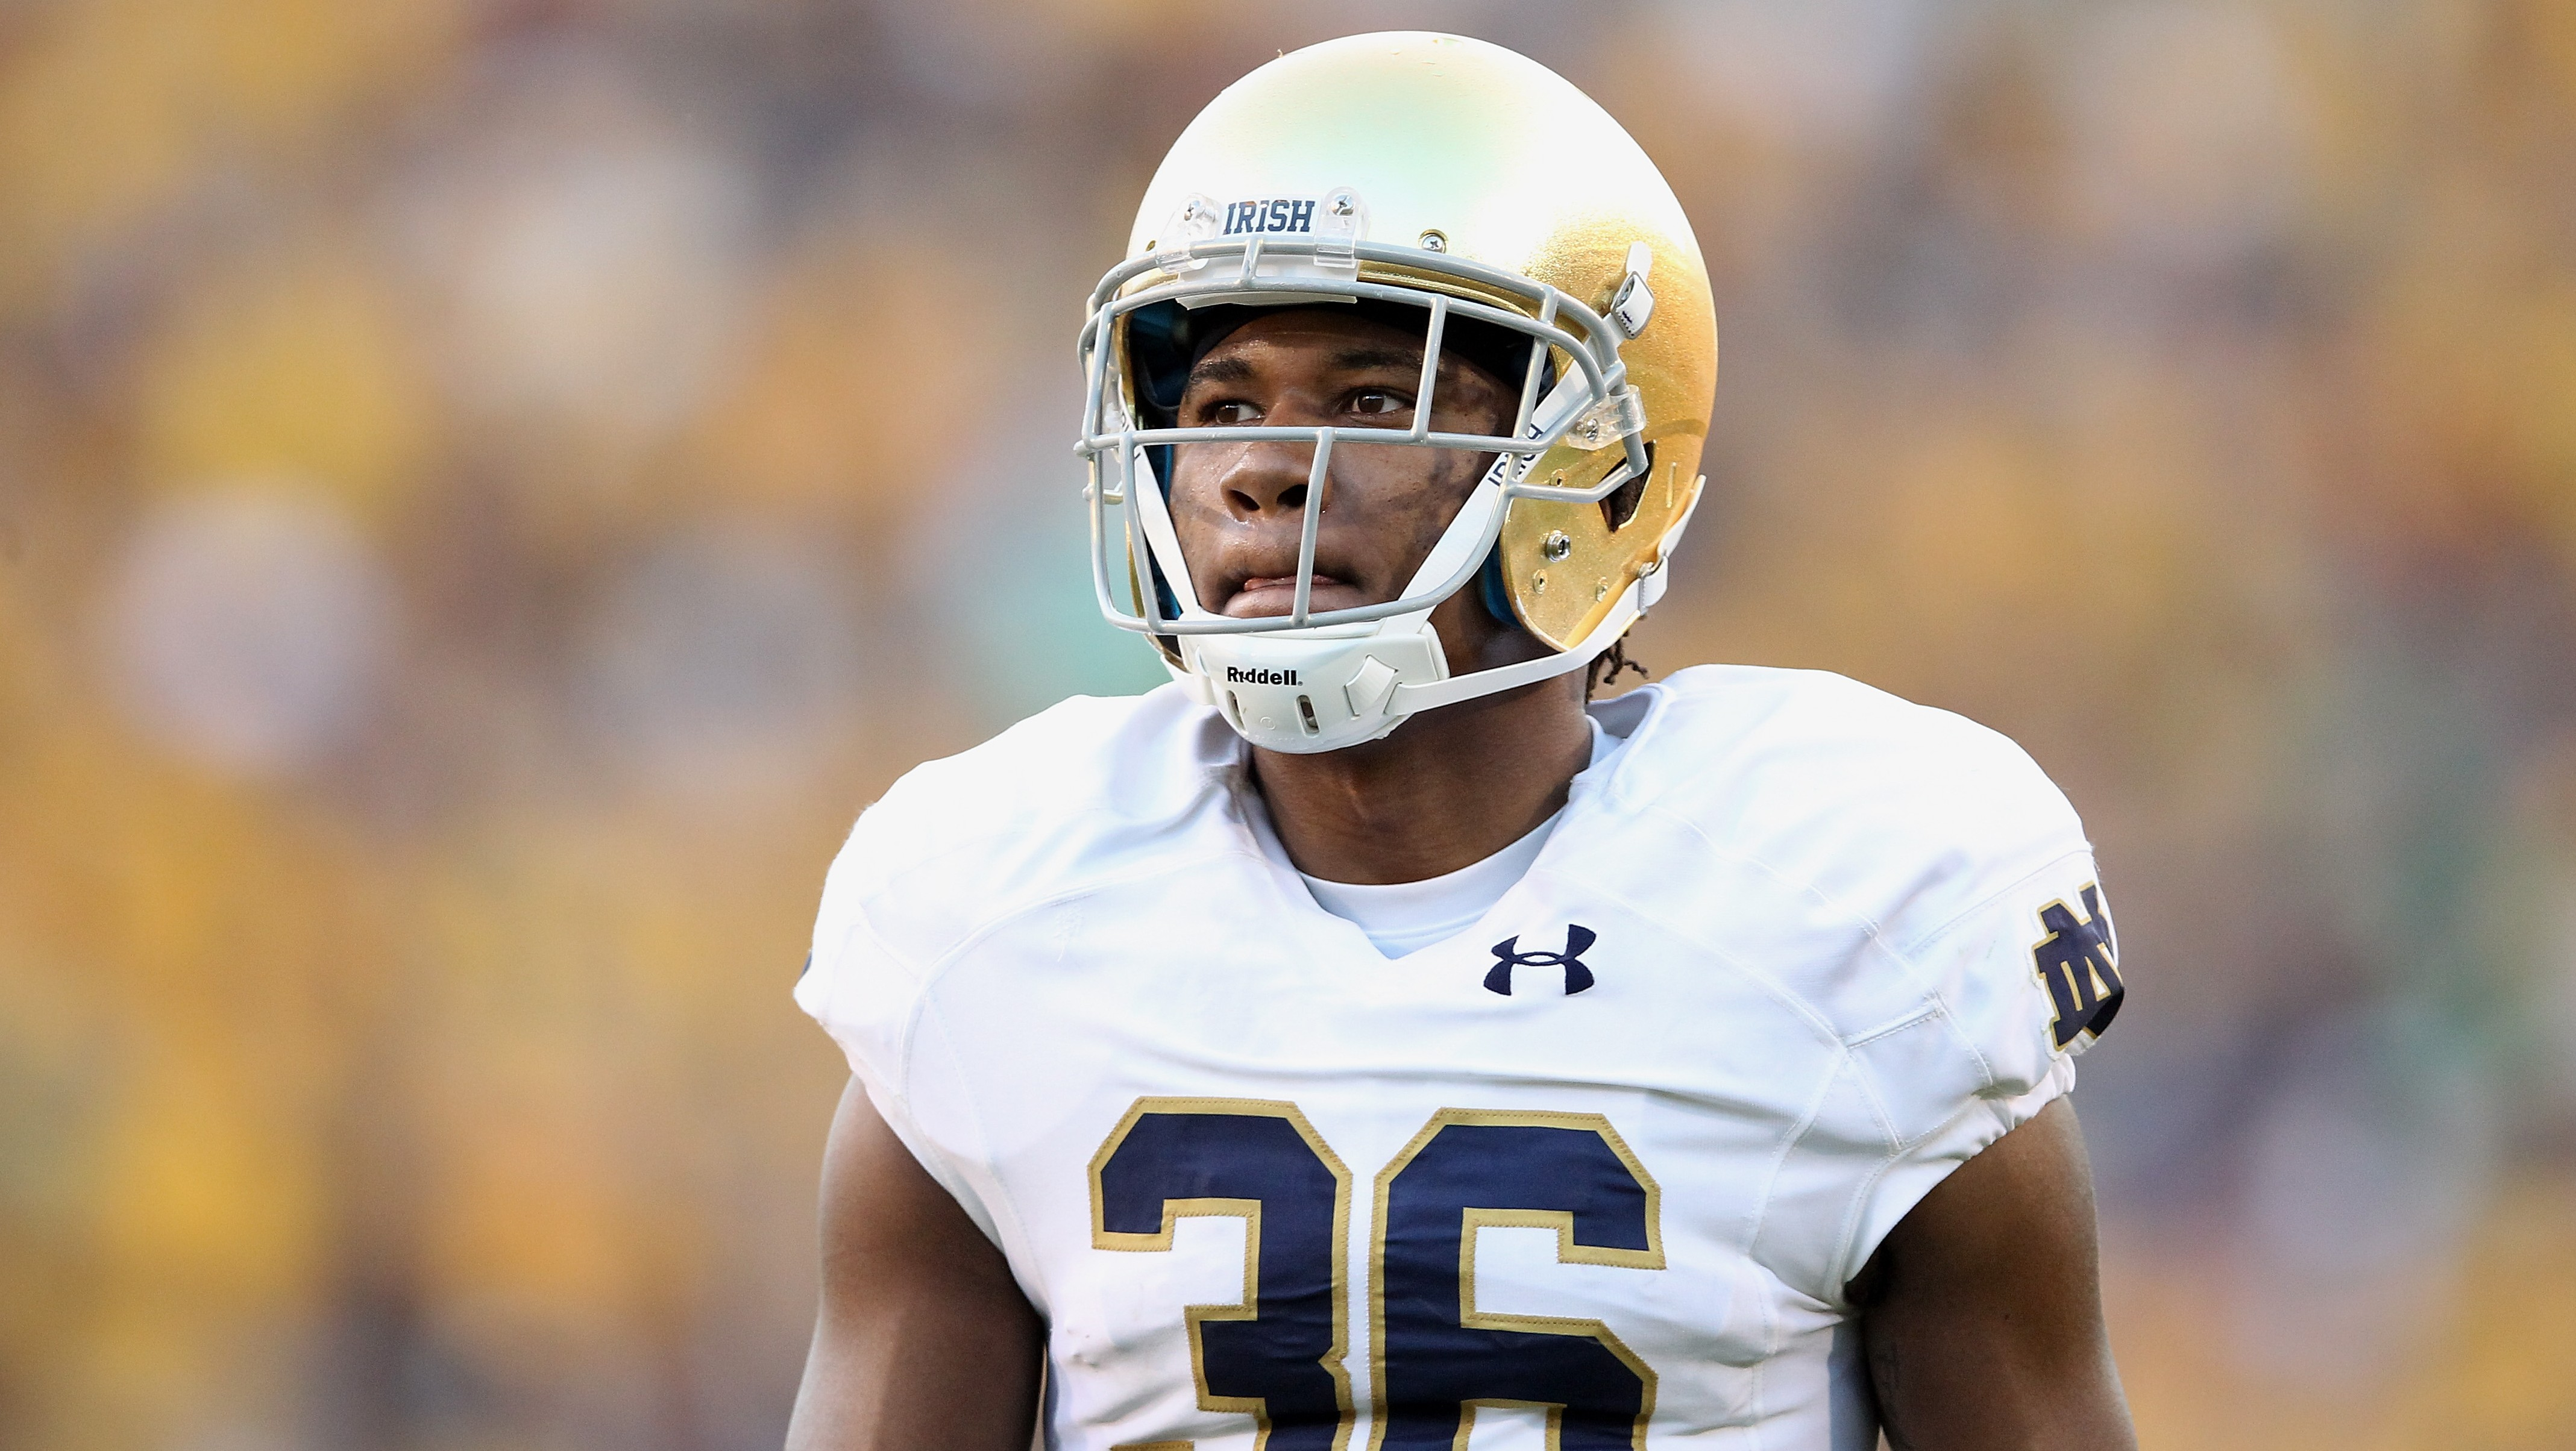 TEMPE, AZ - NOVEMBER 08: Cornerback Cole Luke #36 of the Notre Dame Fighting Irish during the college football game against the Arizona State Sun Devils at Sun Devil Stadium on November 8, 2014 in Tempe, Arizona. The Sun Devils defeated the Fighting Irish 55-31. (Photo by Christian Petersen/Getty Images)